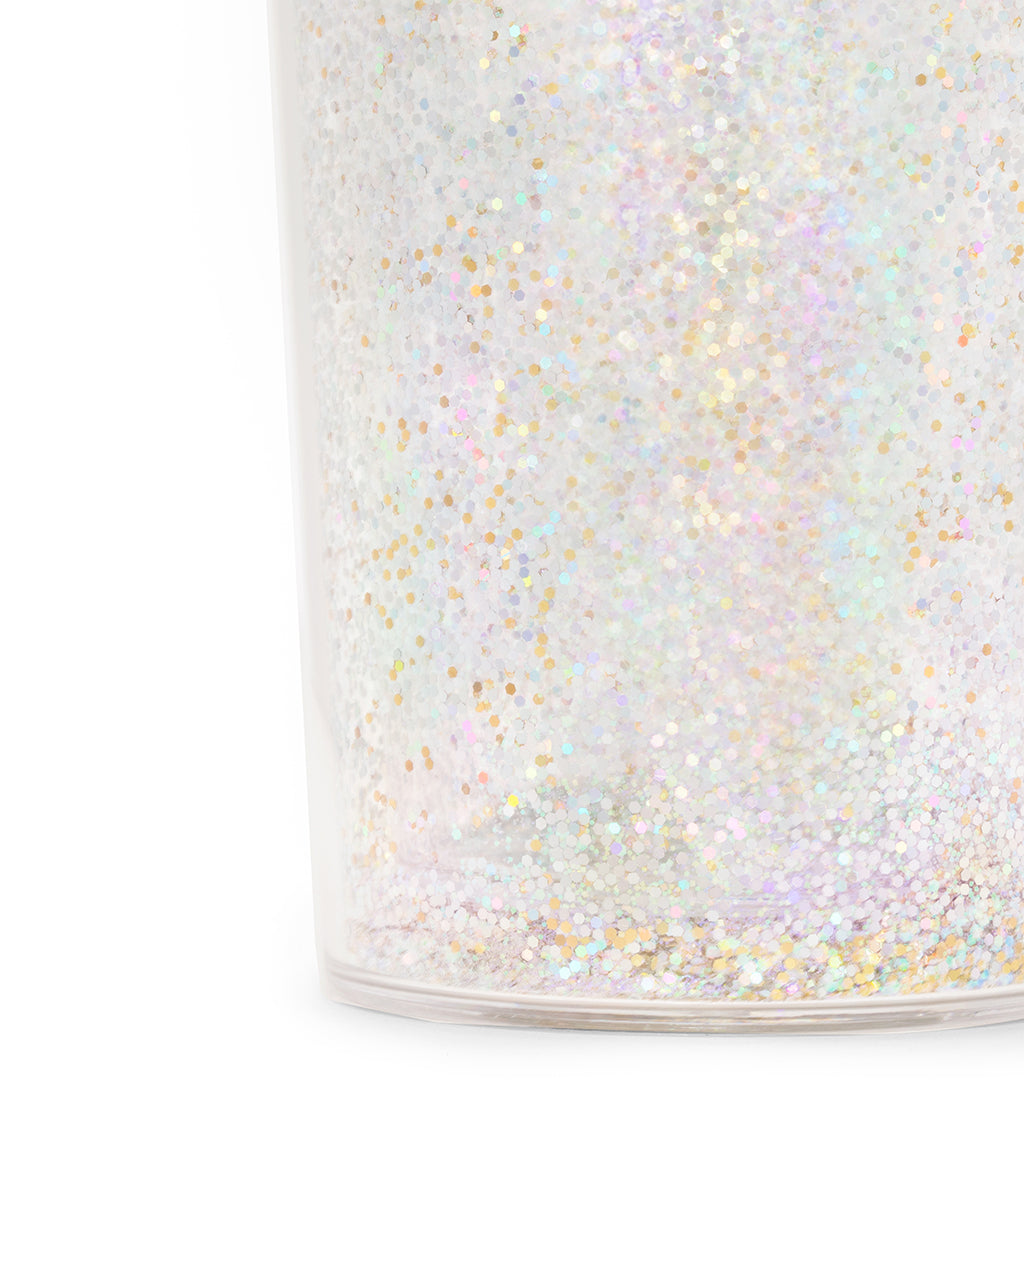 glitter bomb cocktail shaker